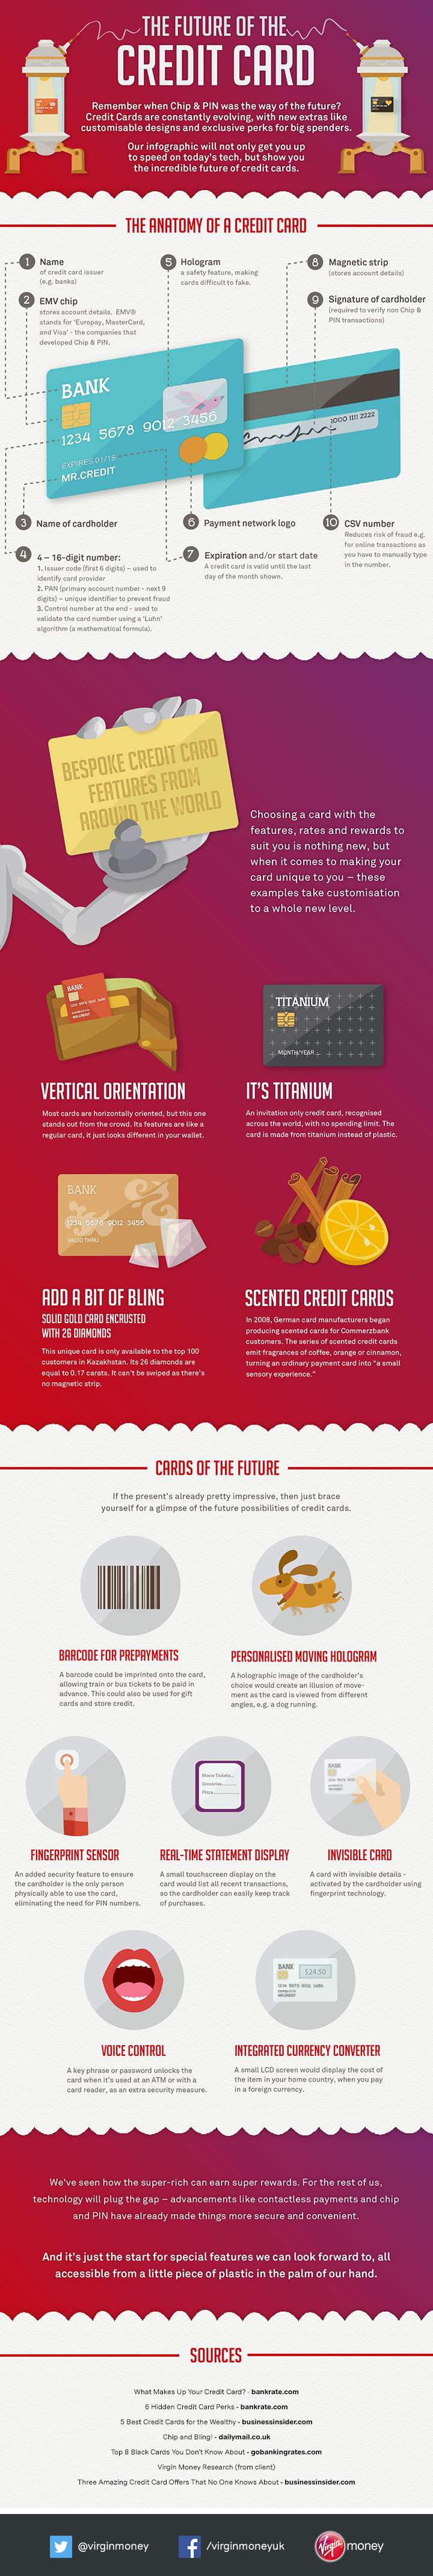 The Future of the Credit Card